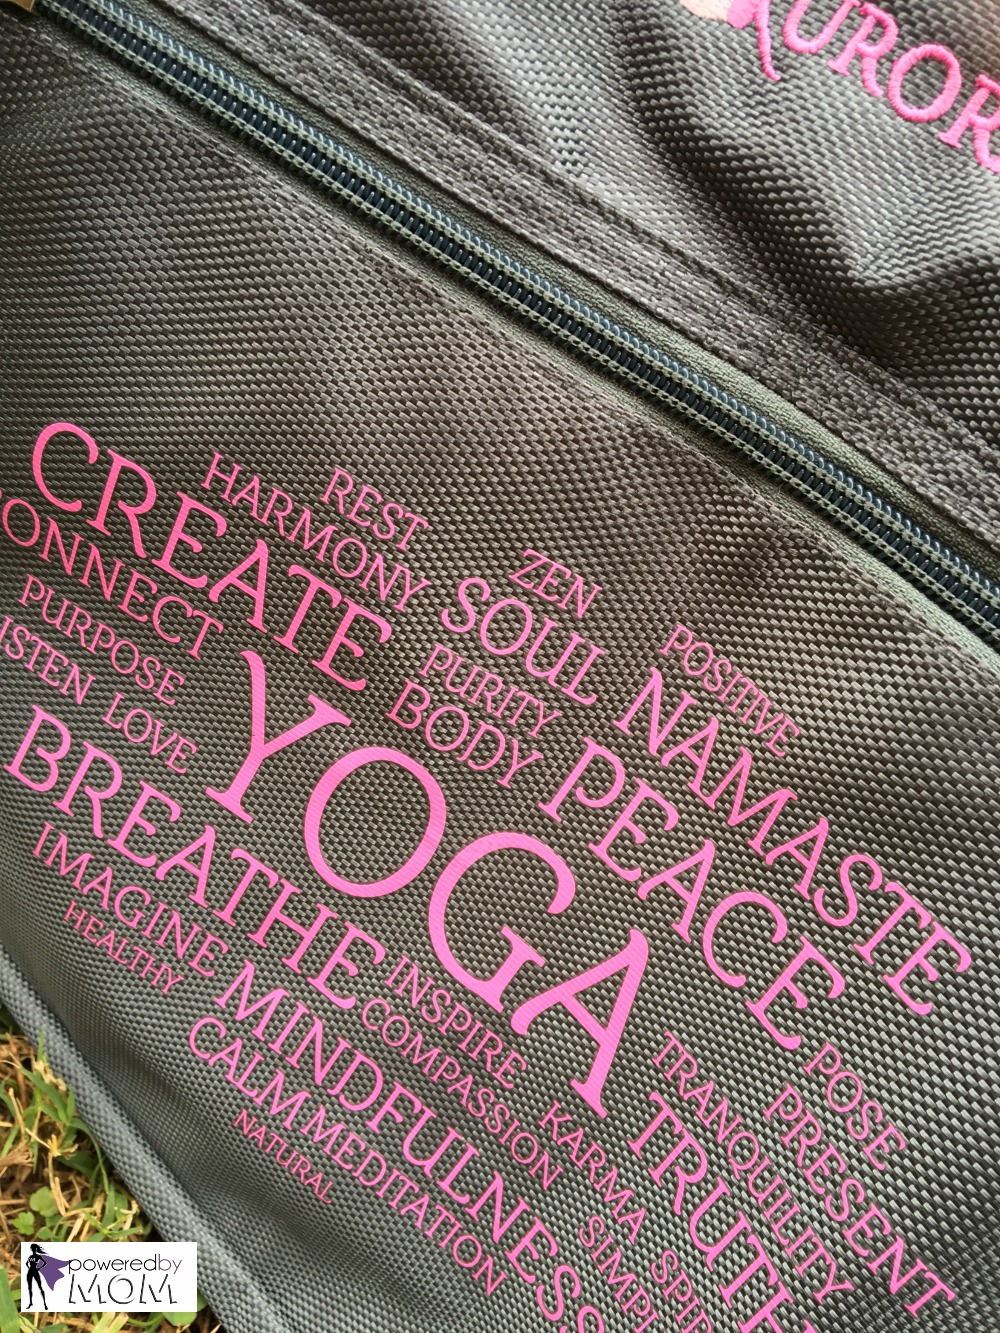 Get Your Yoga on With Aurorae